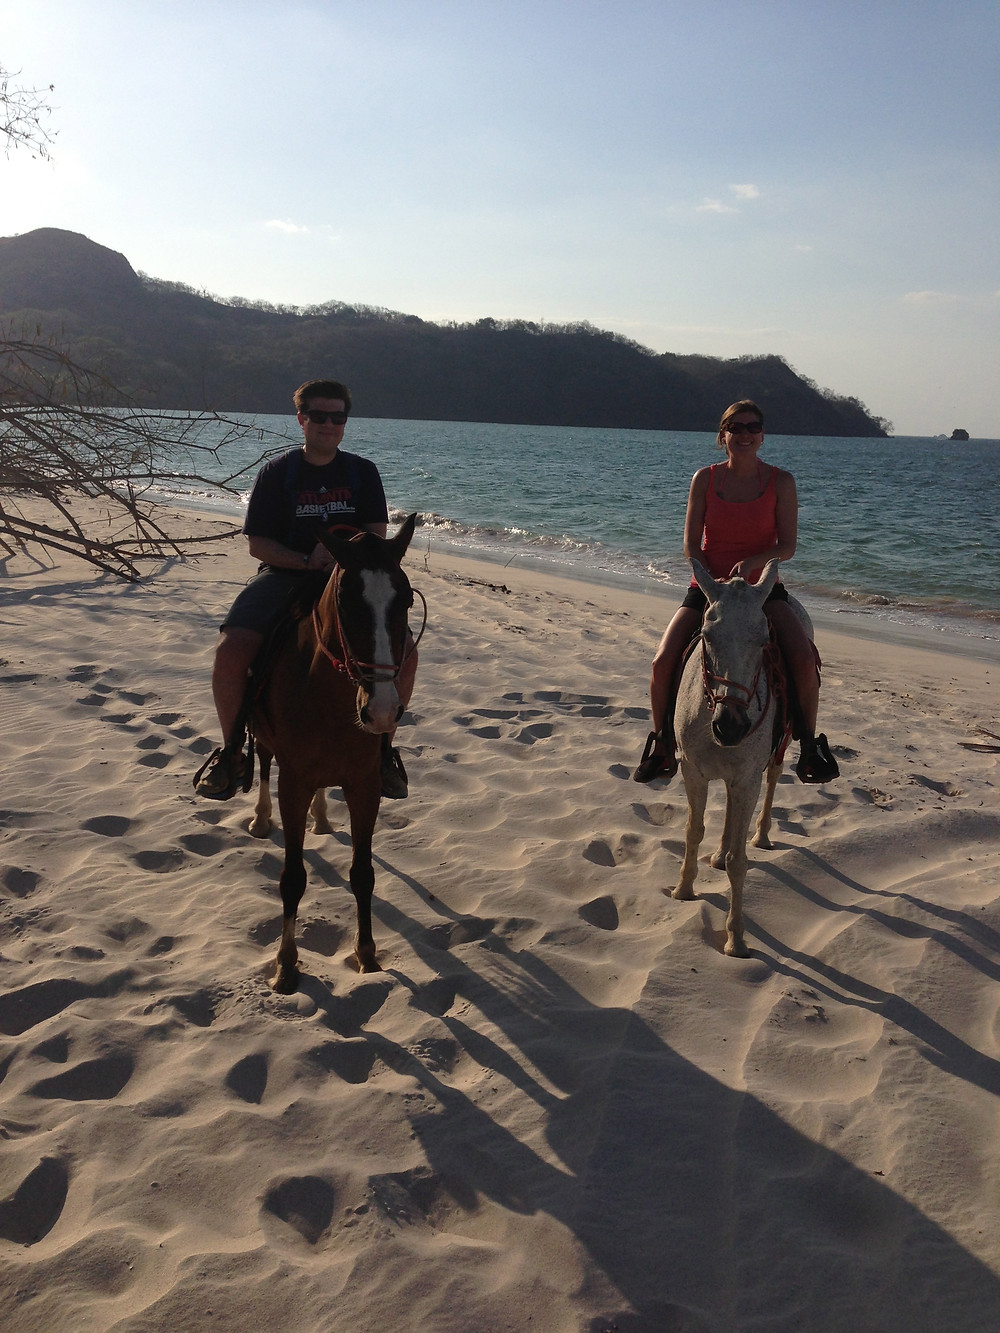 Kristen and Greg in Costa Rica riding horses